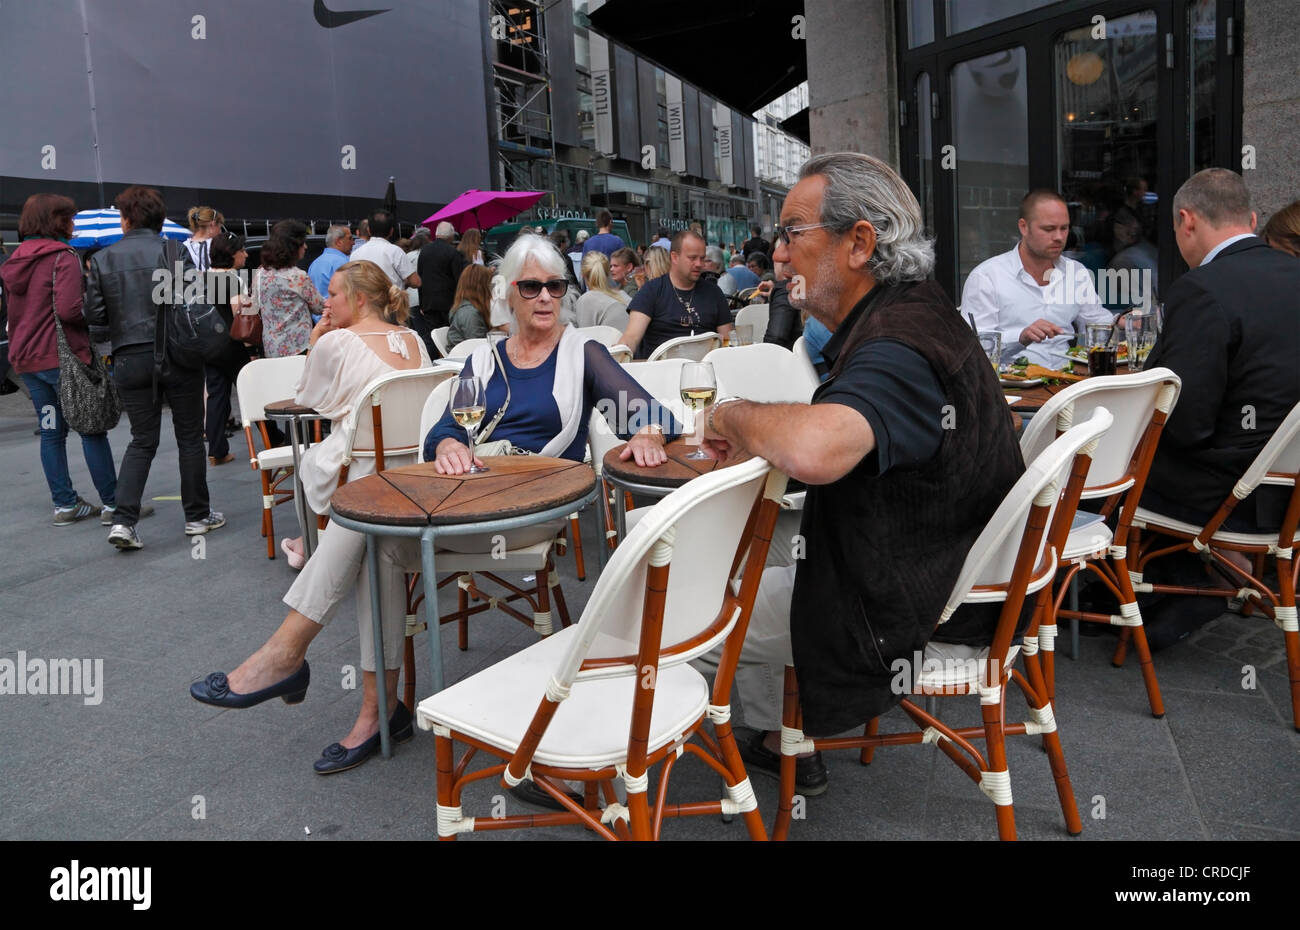 People enjoying the city atmosphere at Cafe Norden, a famous pavement and indoor restaurant and cafe on Strøget - Stock Image